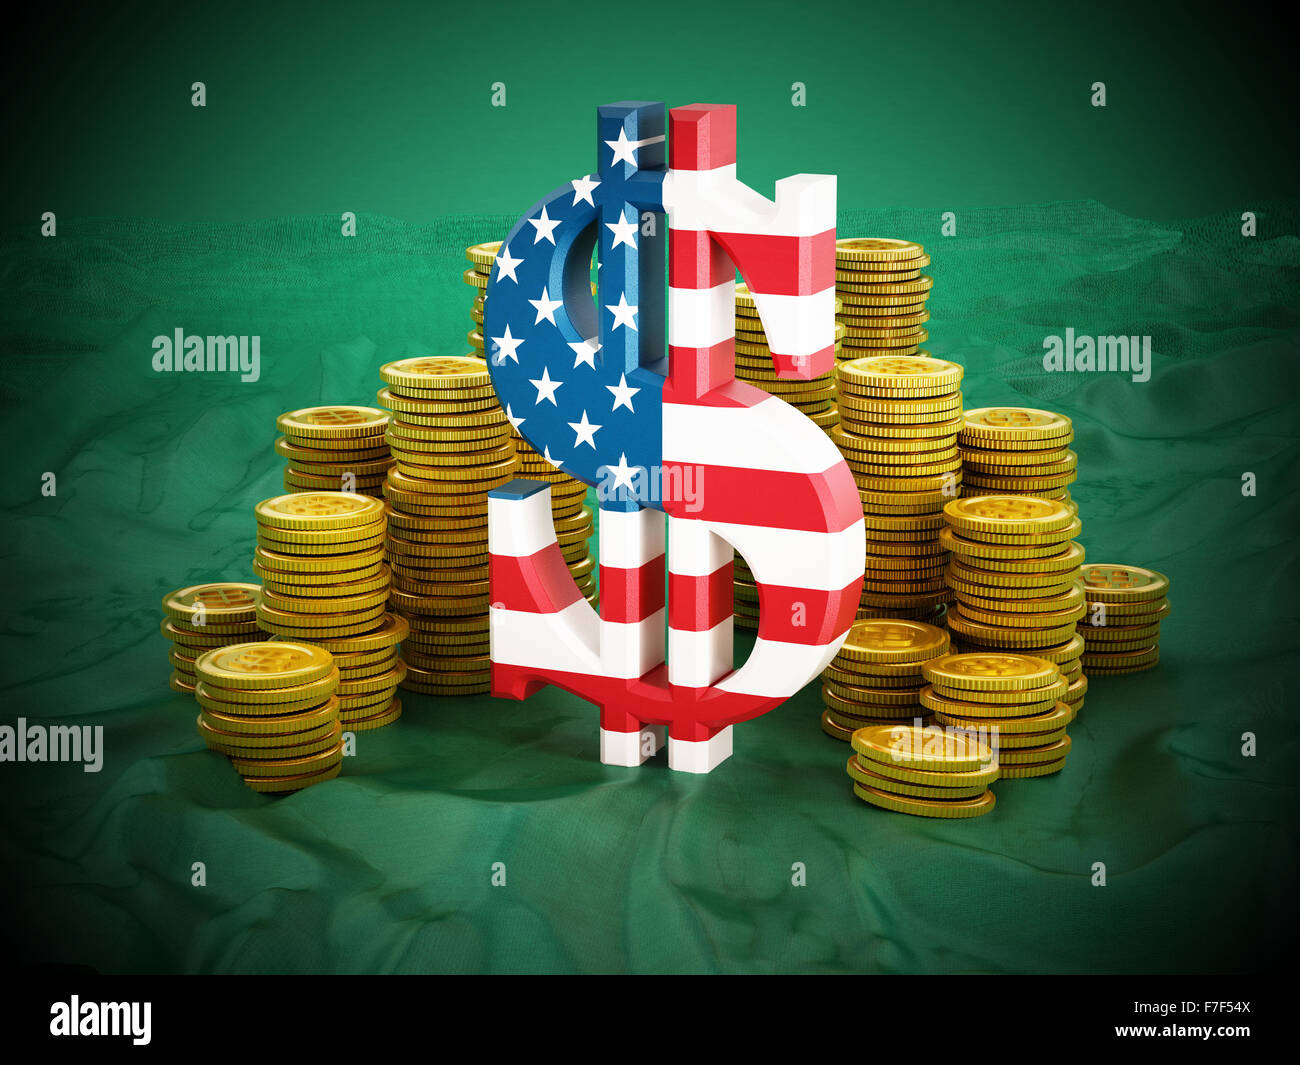 Dollar symbol and gold coins stack on green background. - Stock Image